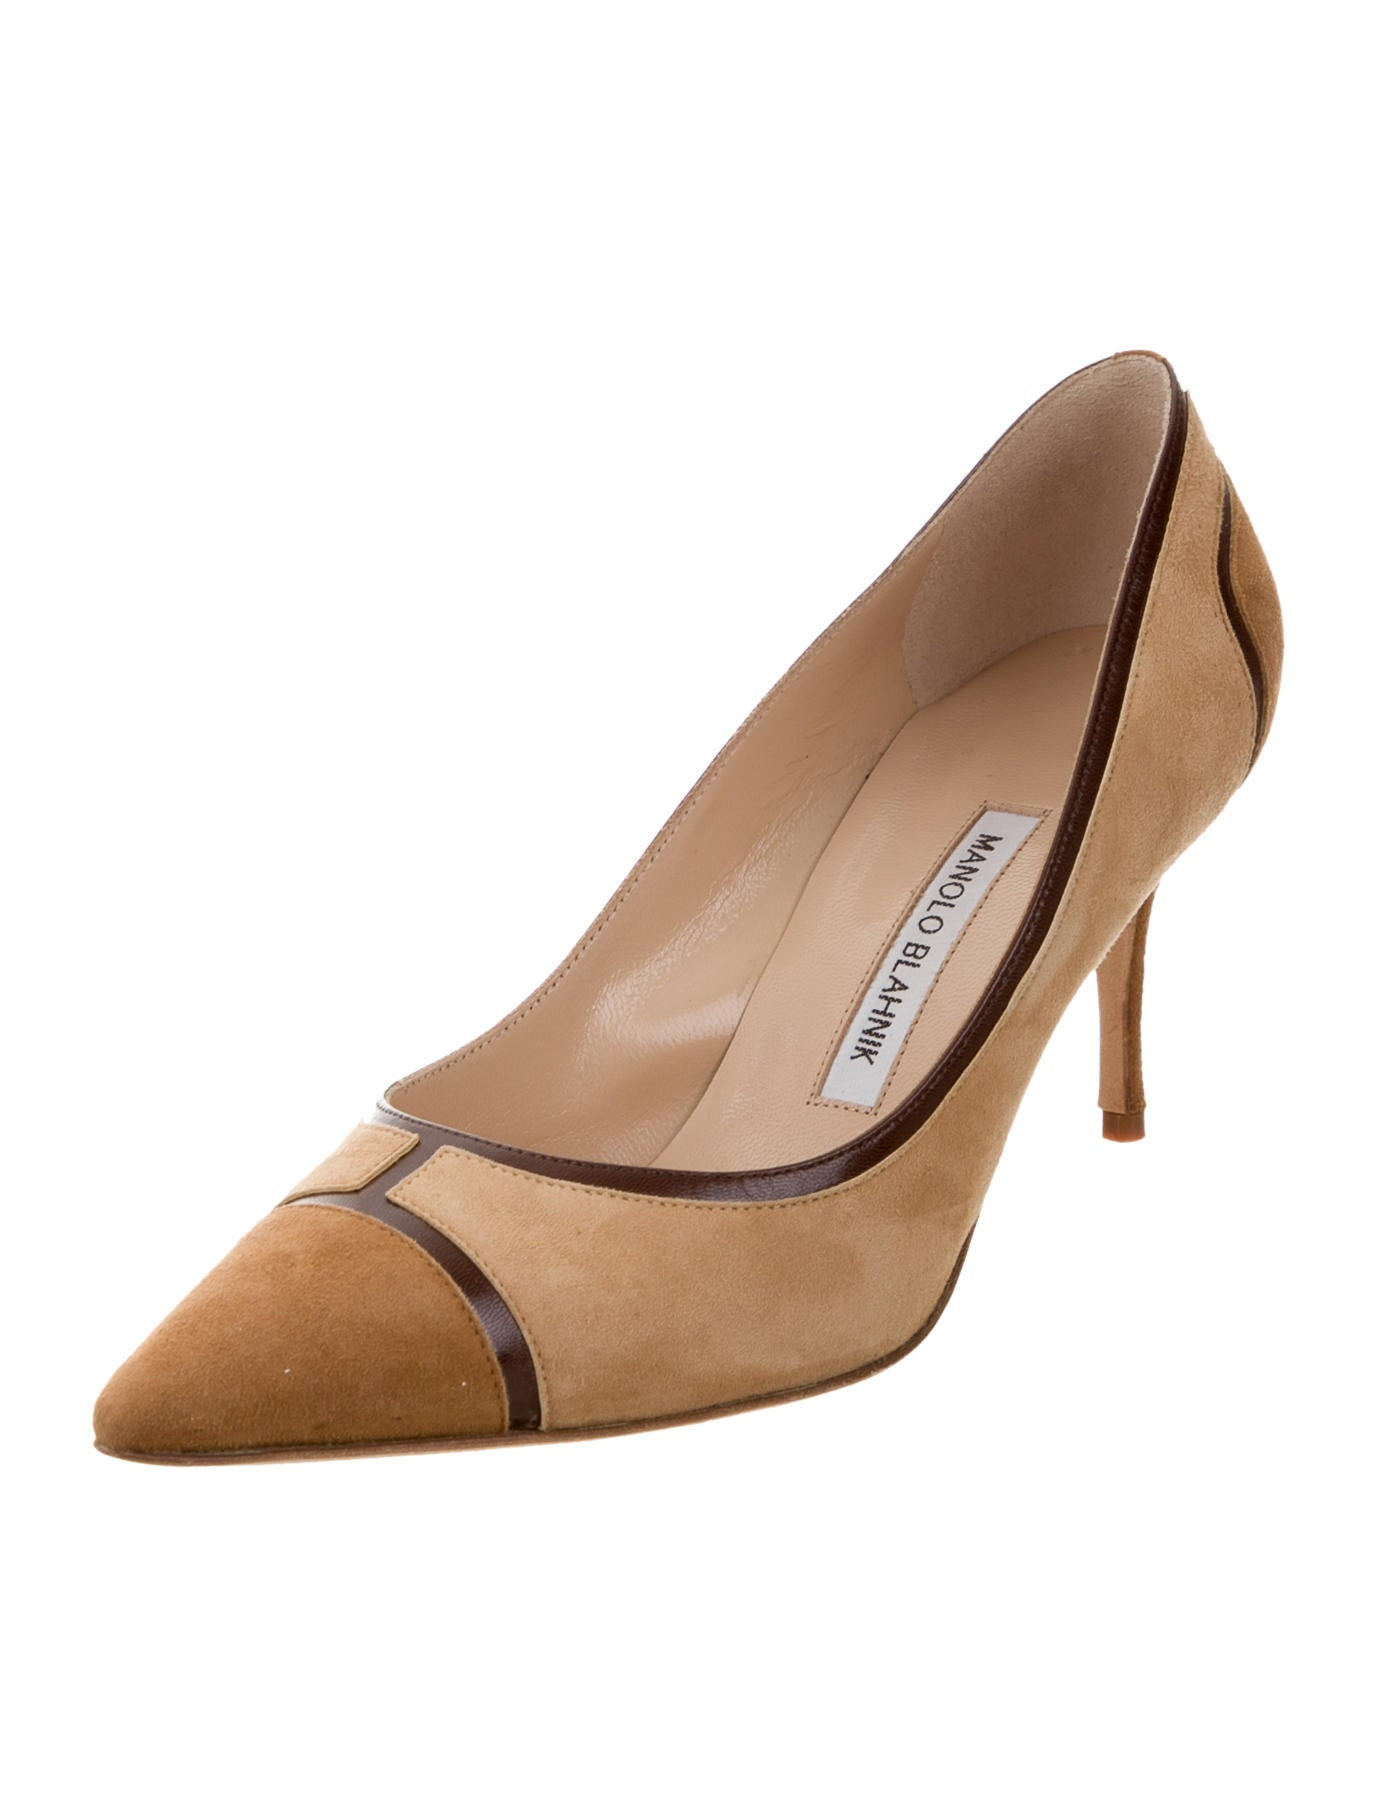 Manolo blahnik suede pointed toe pumps shoes moo61565 for Shoes by manolo blahnik